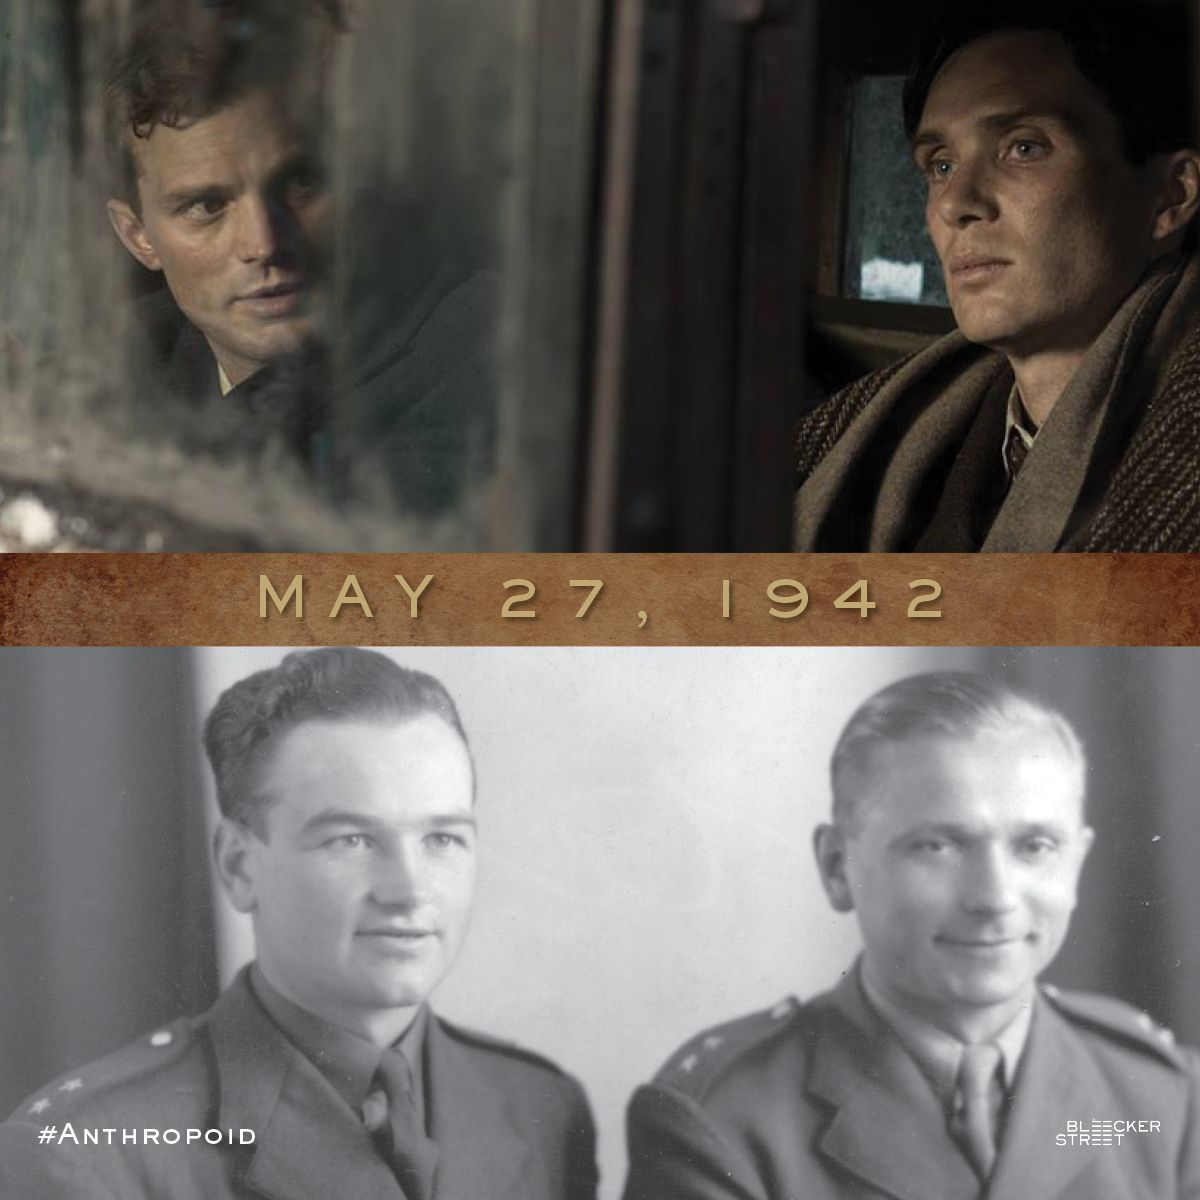 Today marks the anniversary of WWII Operation #Anthropoid, the order to assassinate Reinhard Heydrich, the third highest ranking Nazi commander after Himmler and Hitler himself. See the story brought to life, coming to theaters on August 12, 2016.